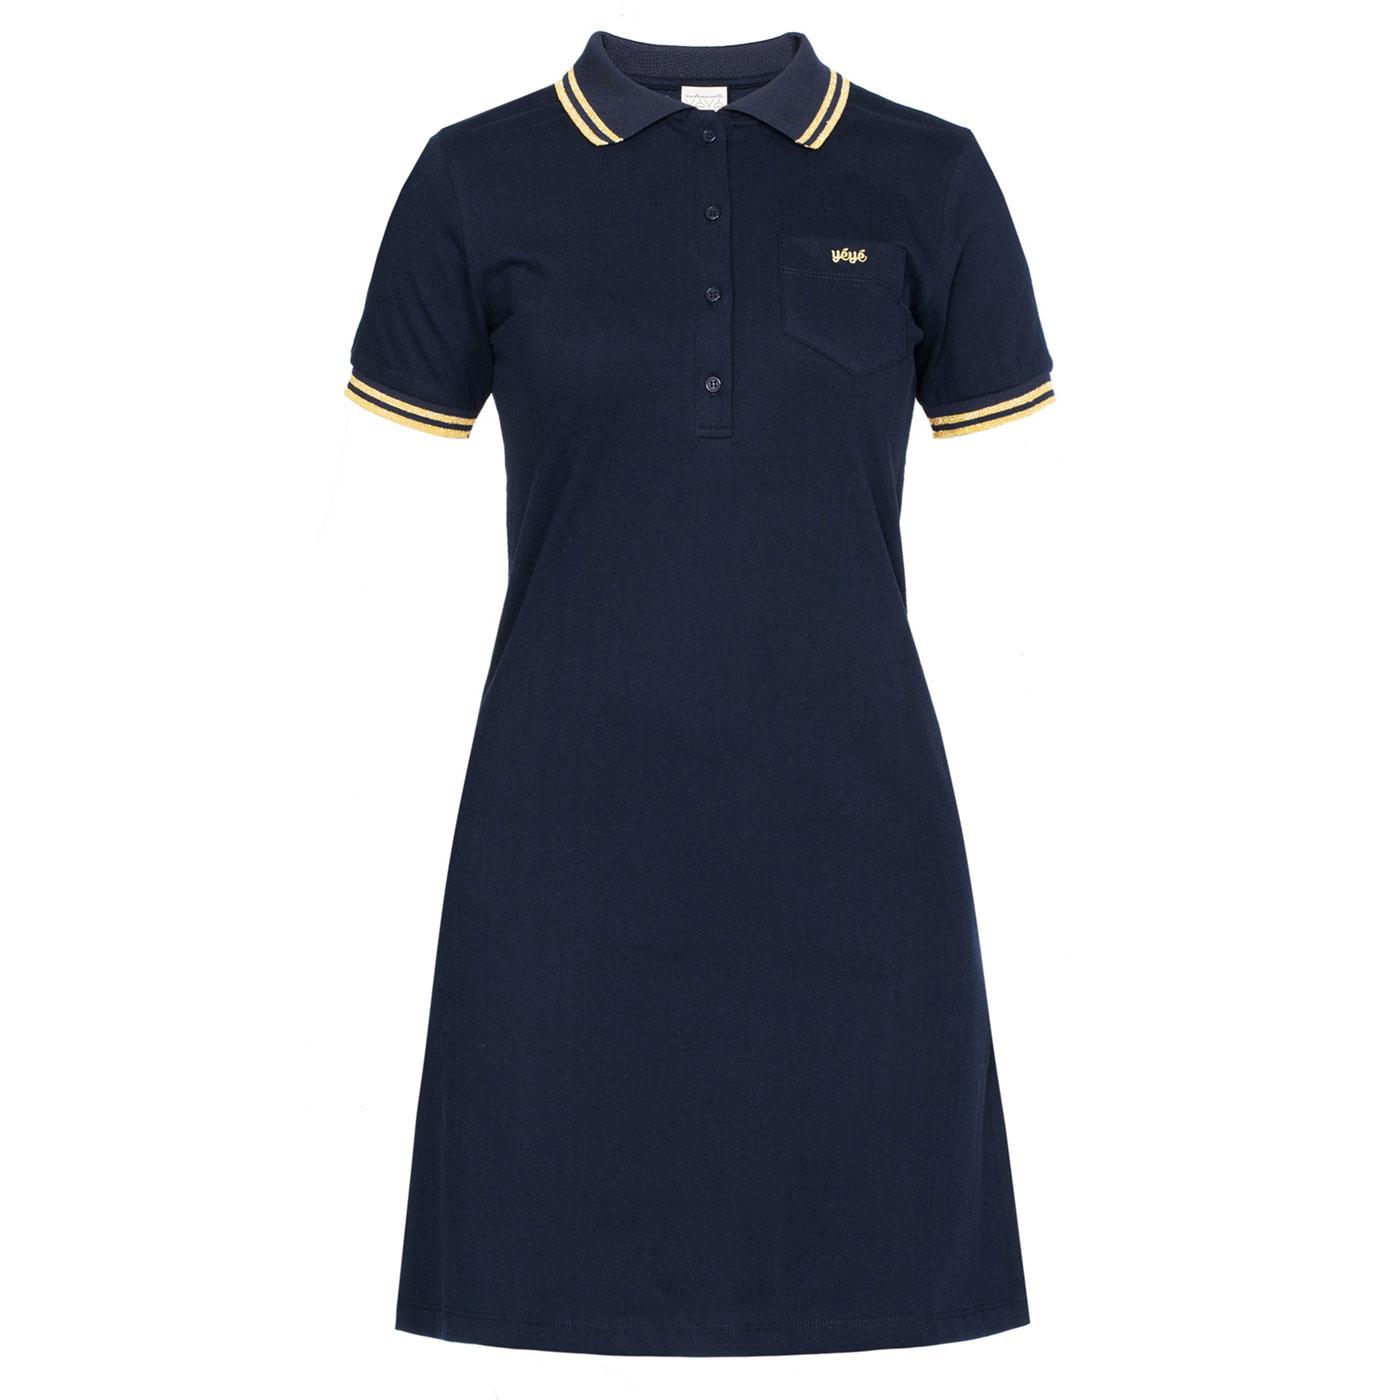 Rocksteady MADEMOISELLE YEYE 60s Mod Polo Dress